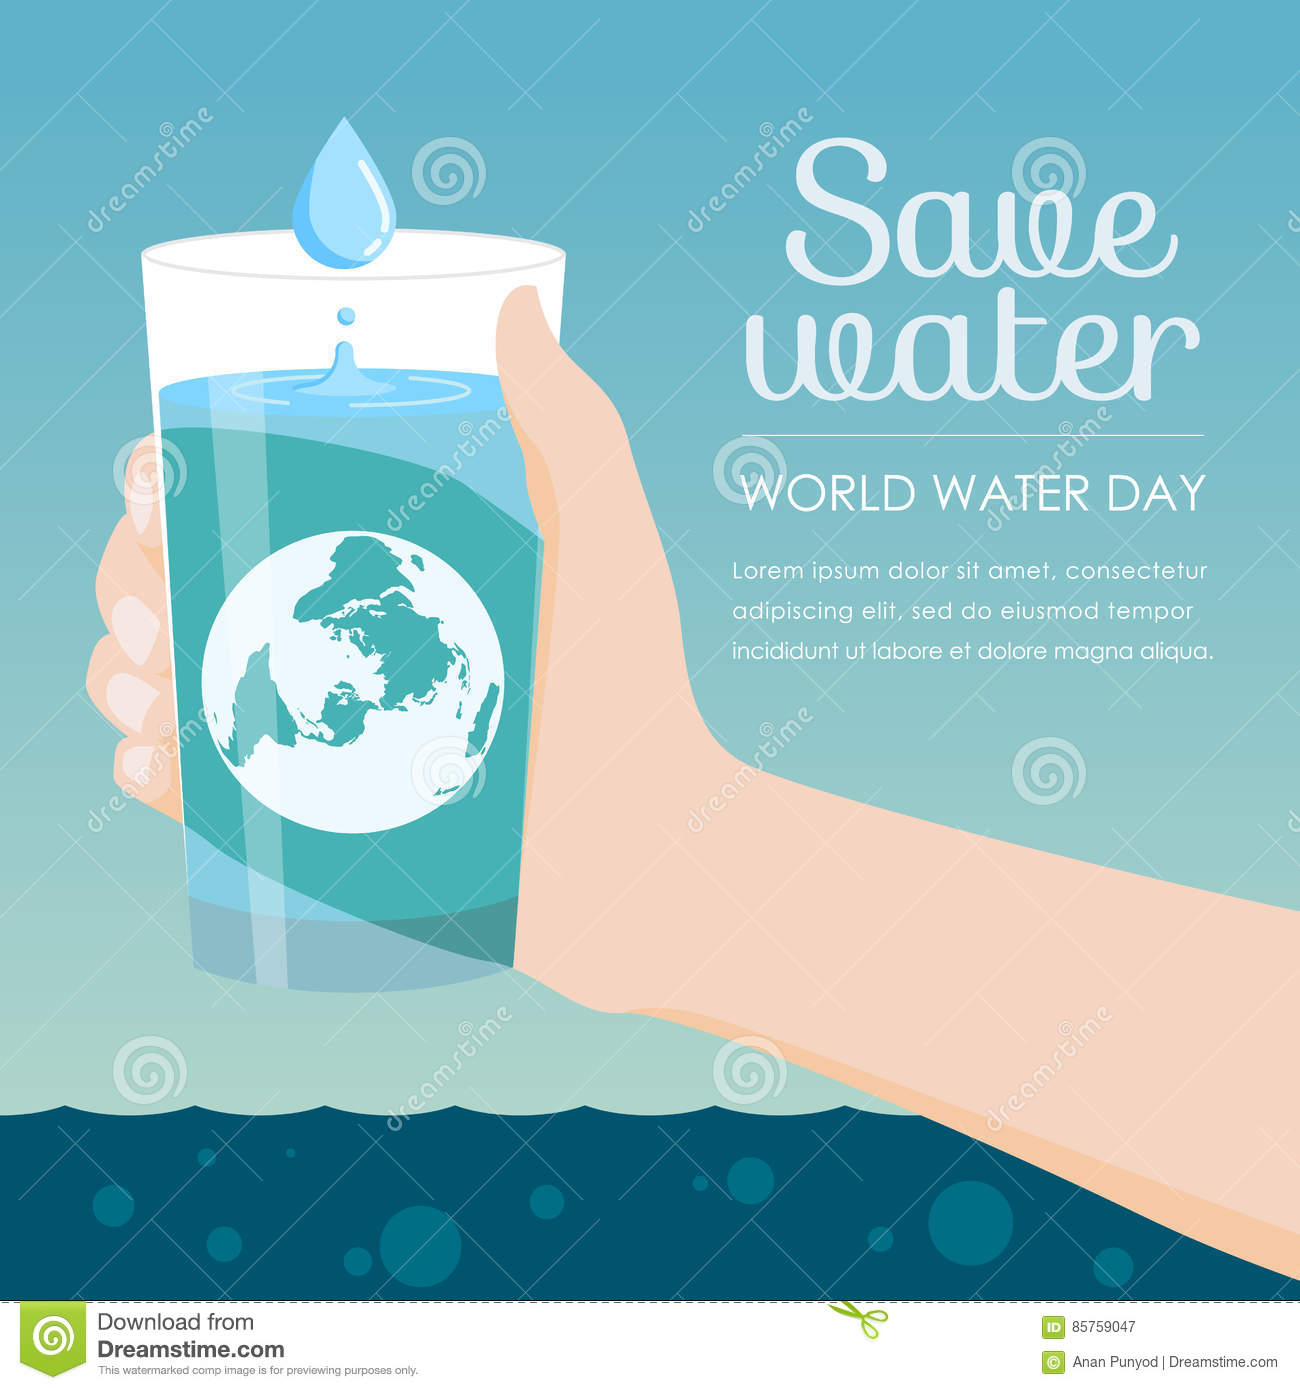 Save water in world water day - Hand holding a glass of water and earth vector design